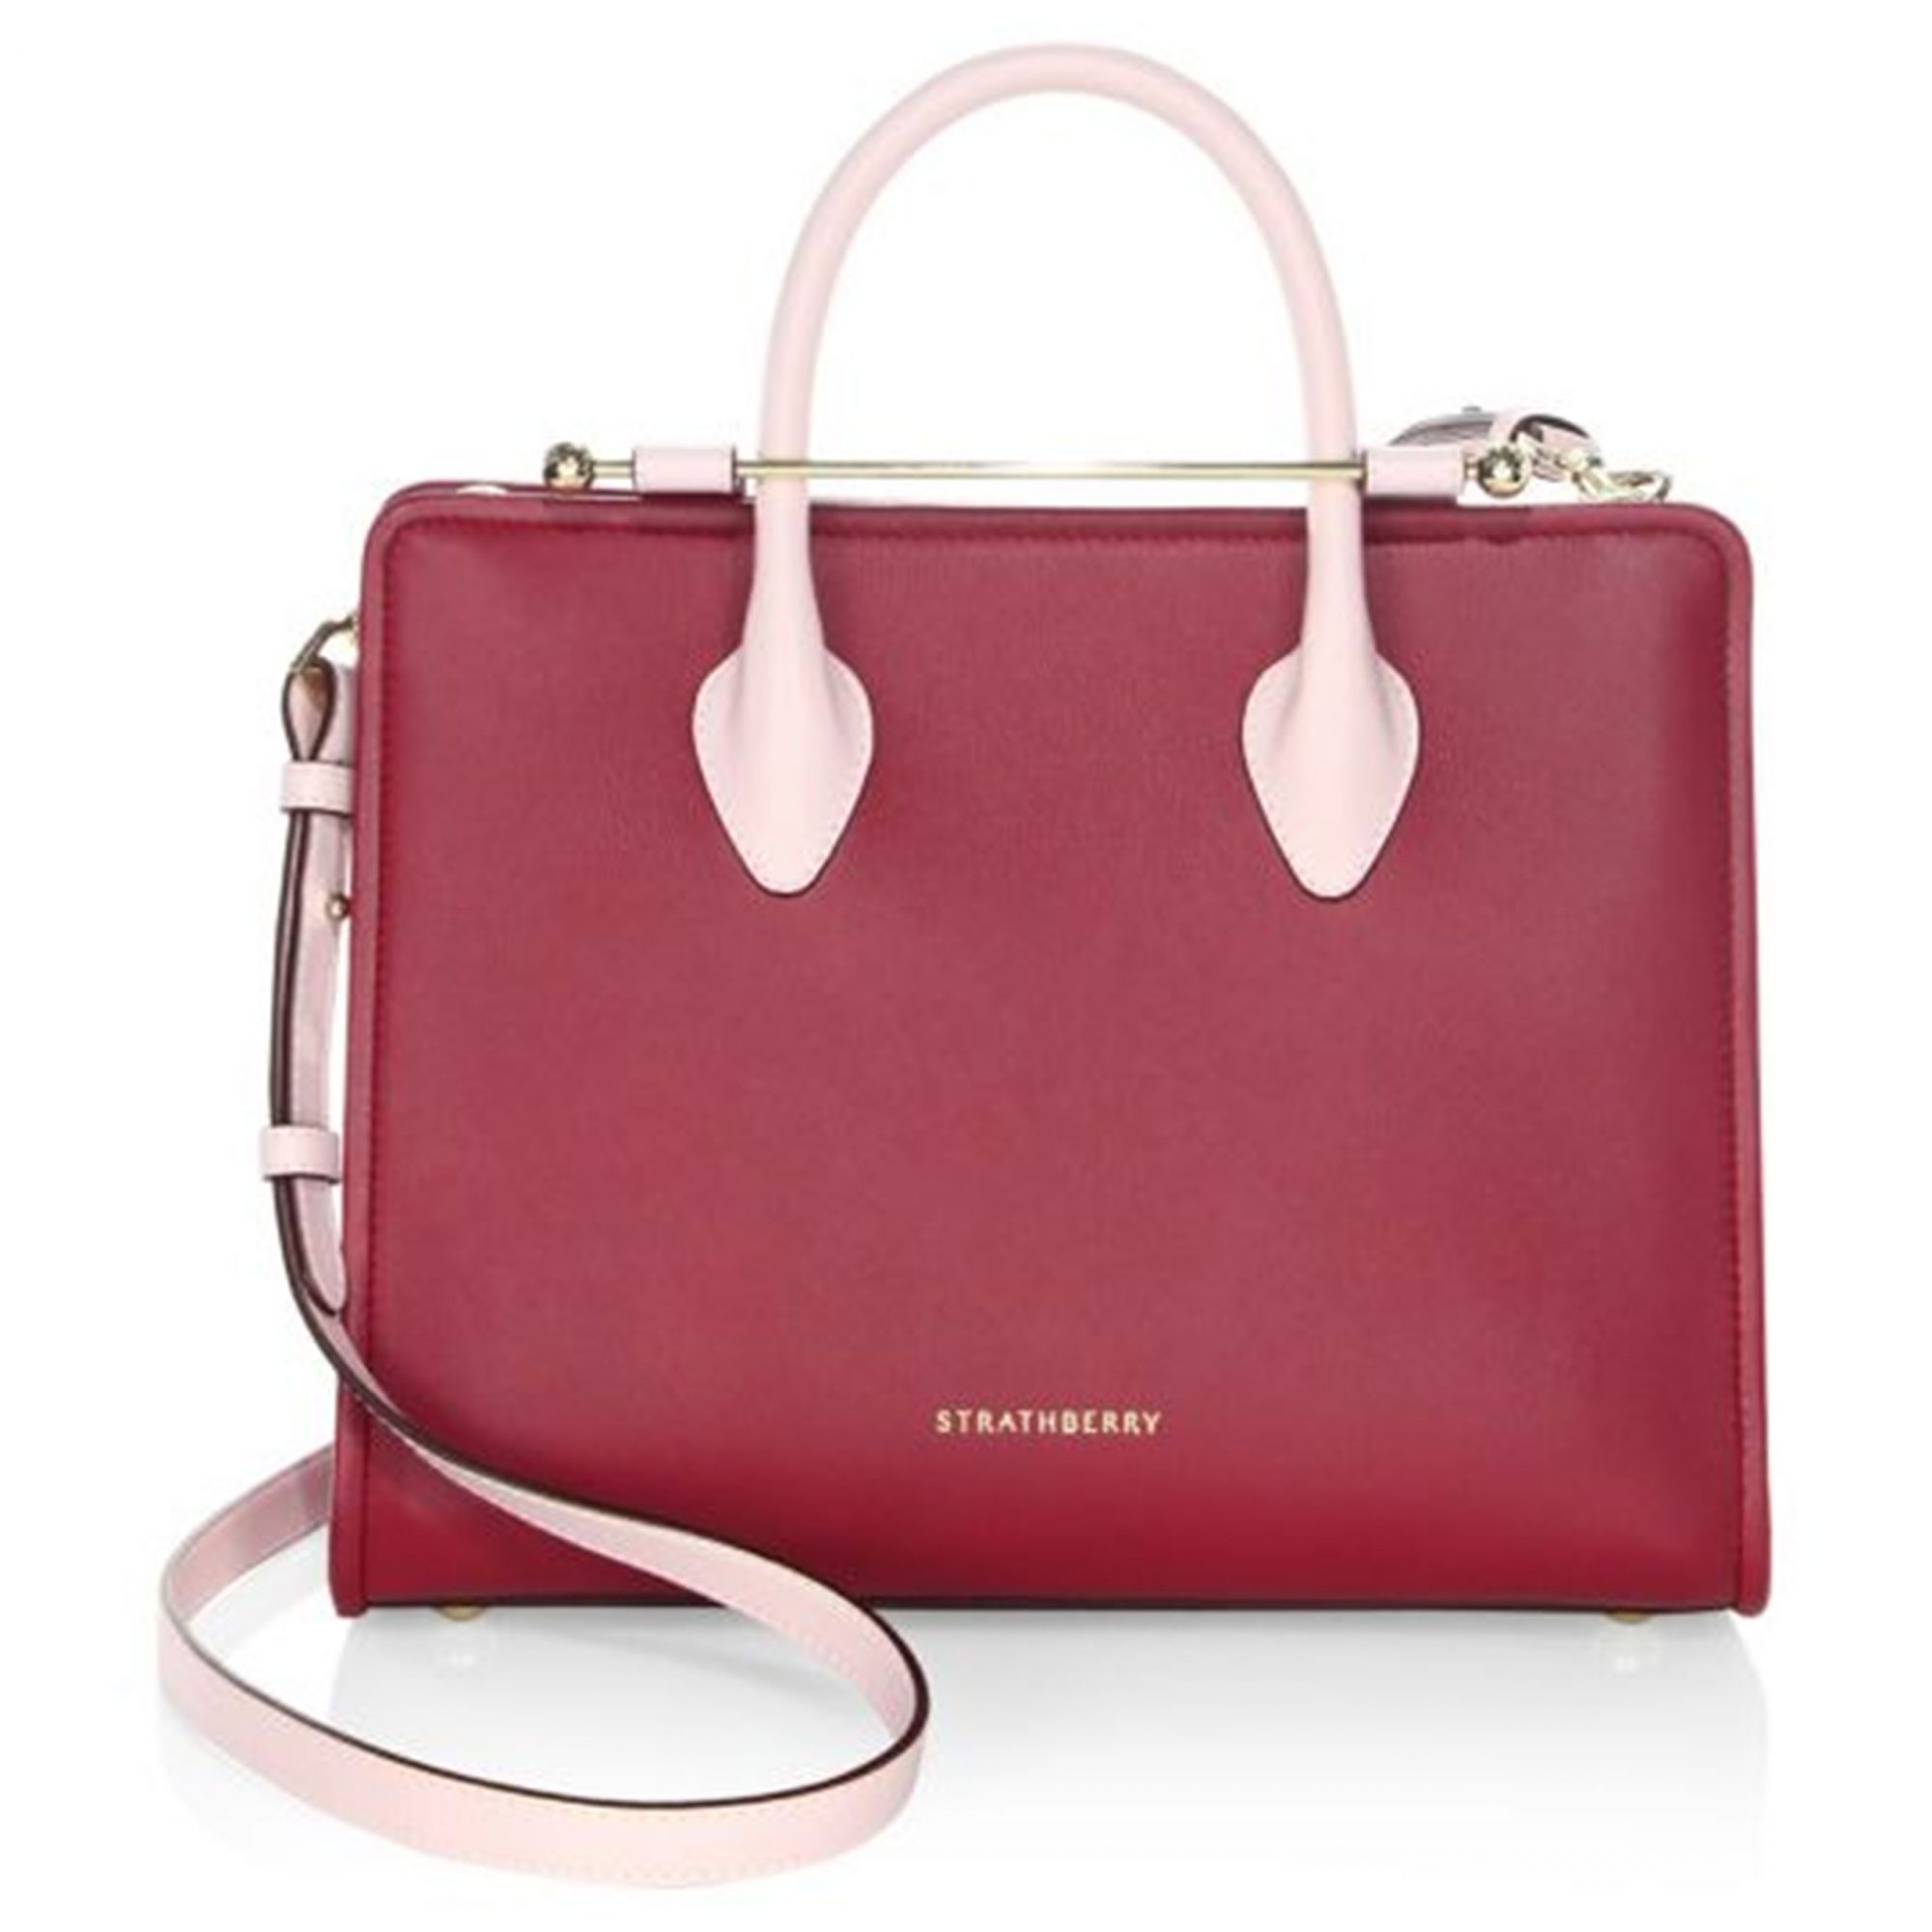 Red leather box tote from Strathberry at Saks Fifth Avenue